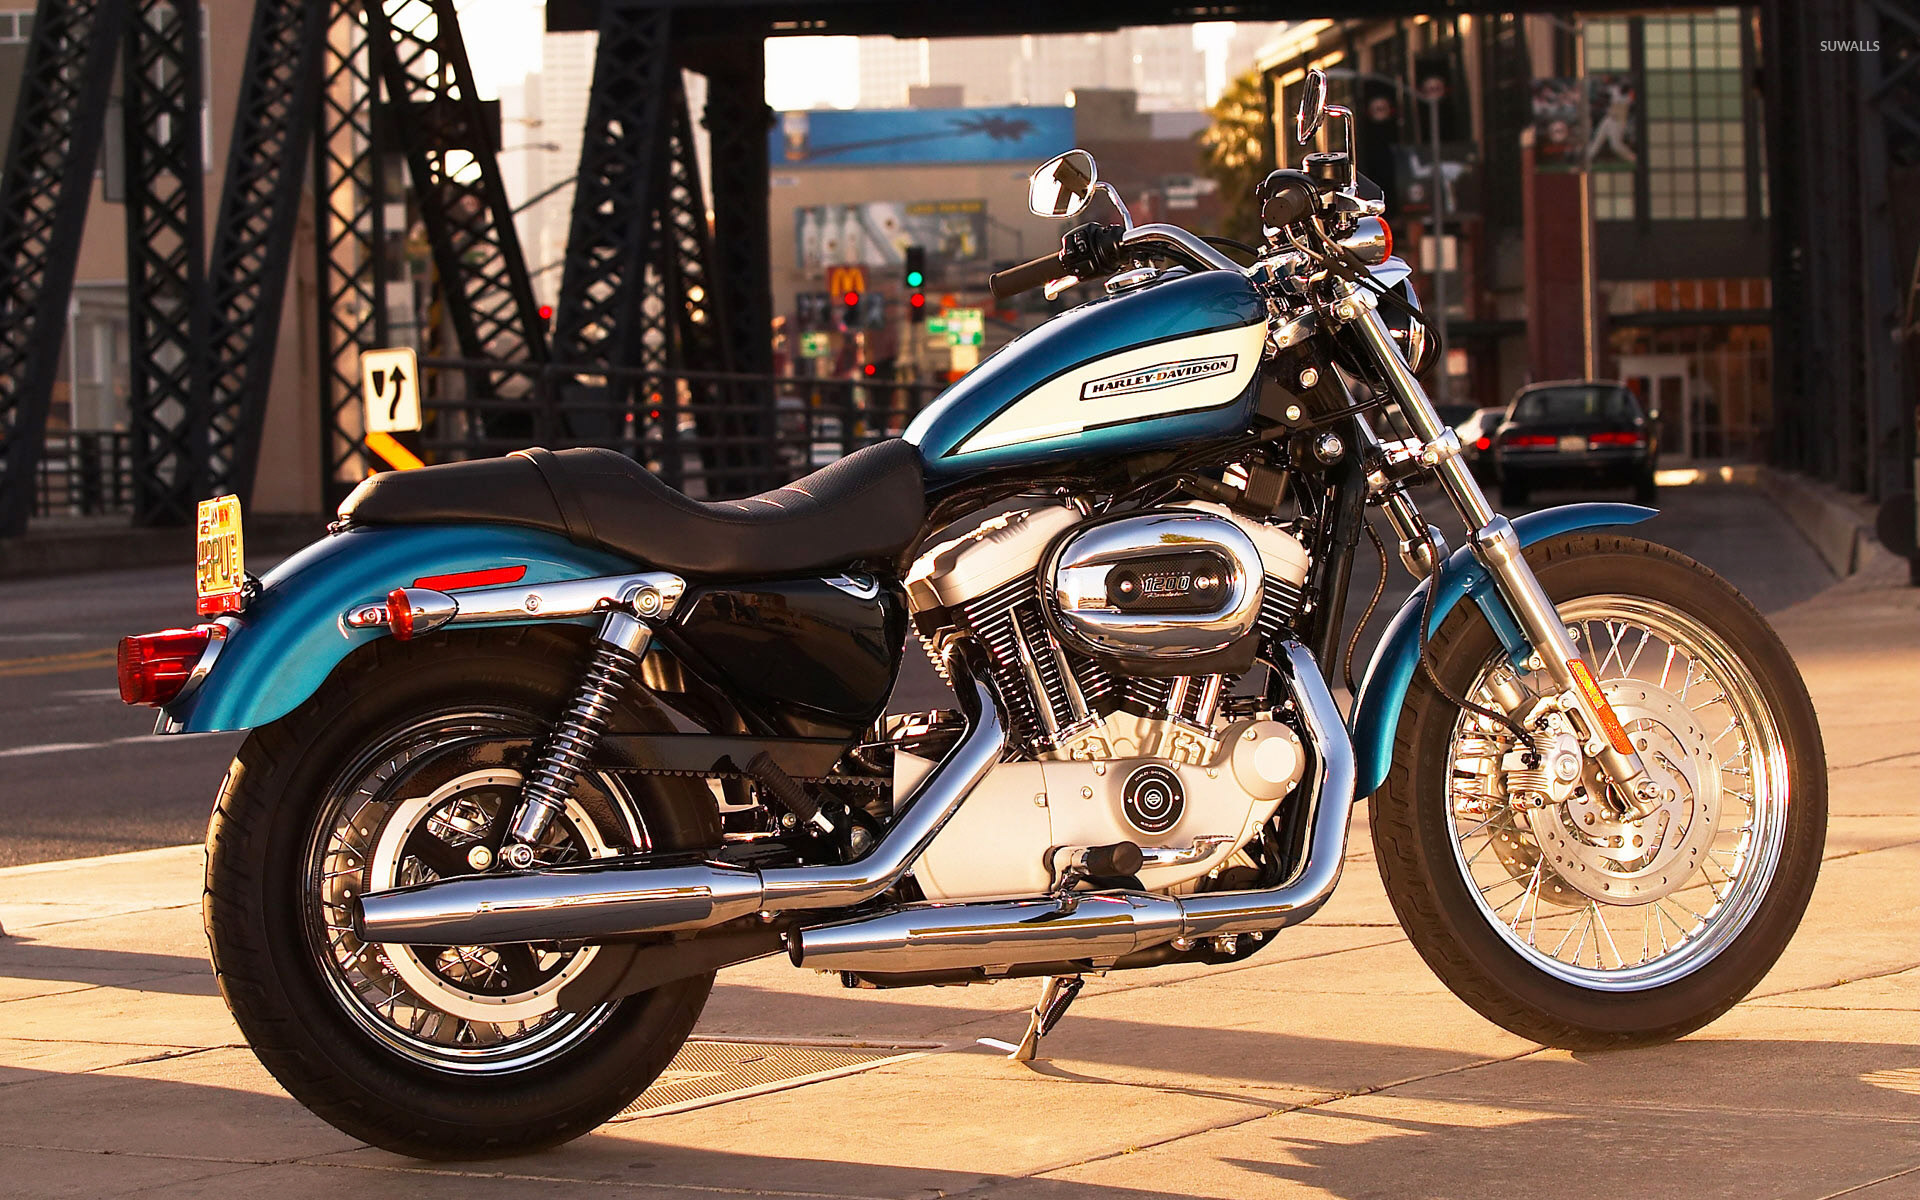 Harley Davidson Sportster XL1200R wallpapers